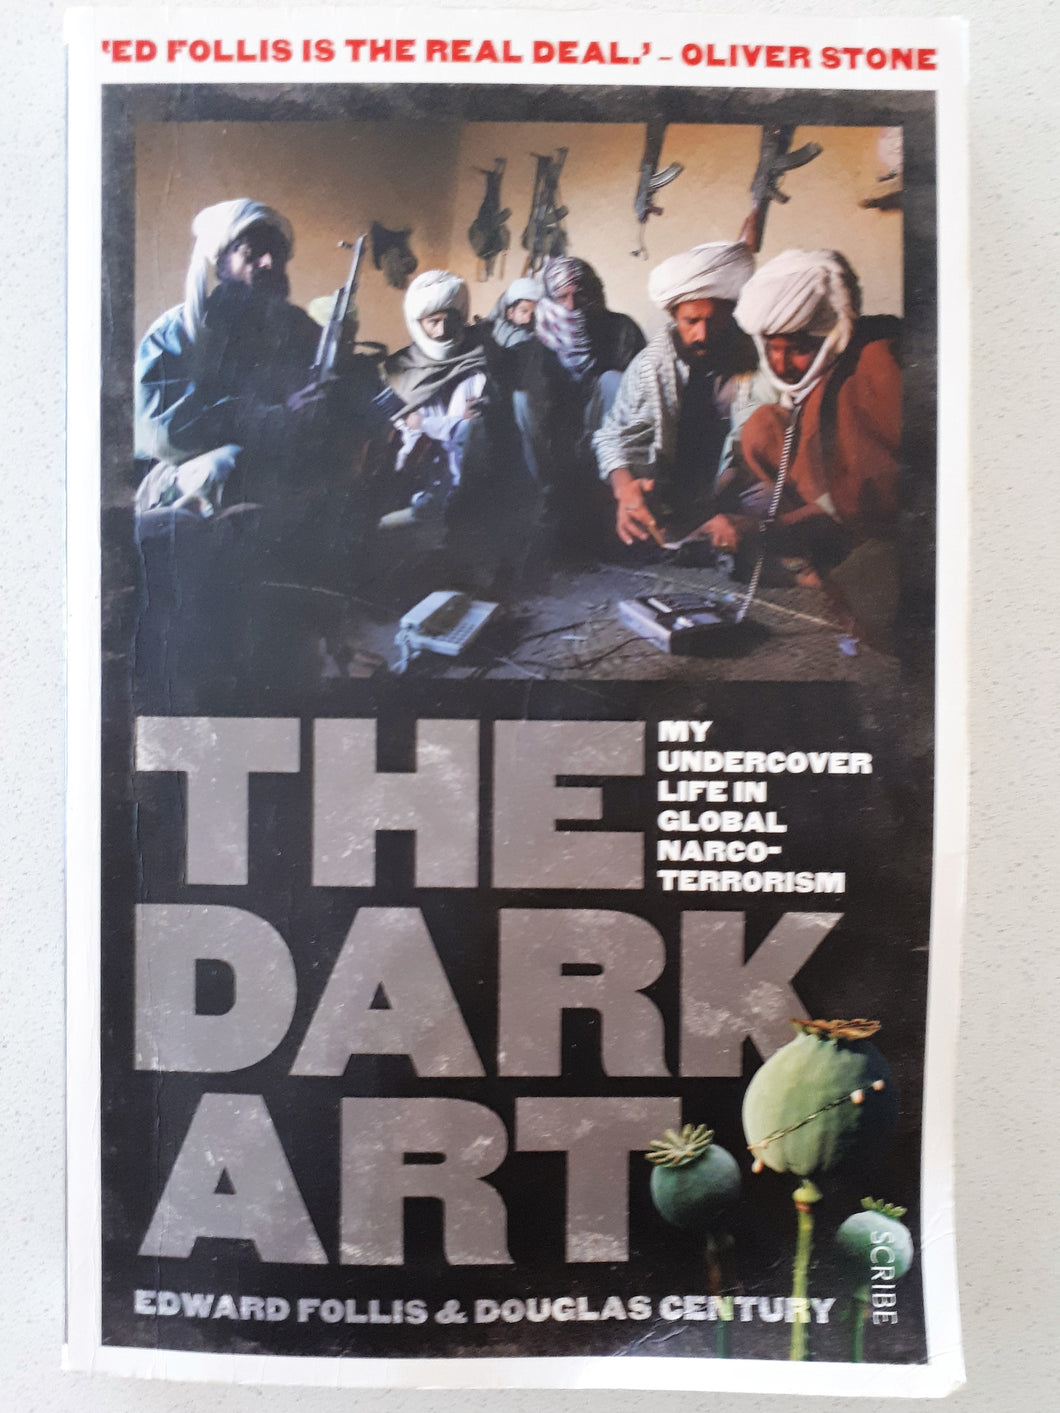 The Dark Art by Edward Follis & Douglas Century